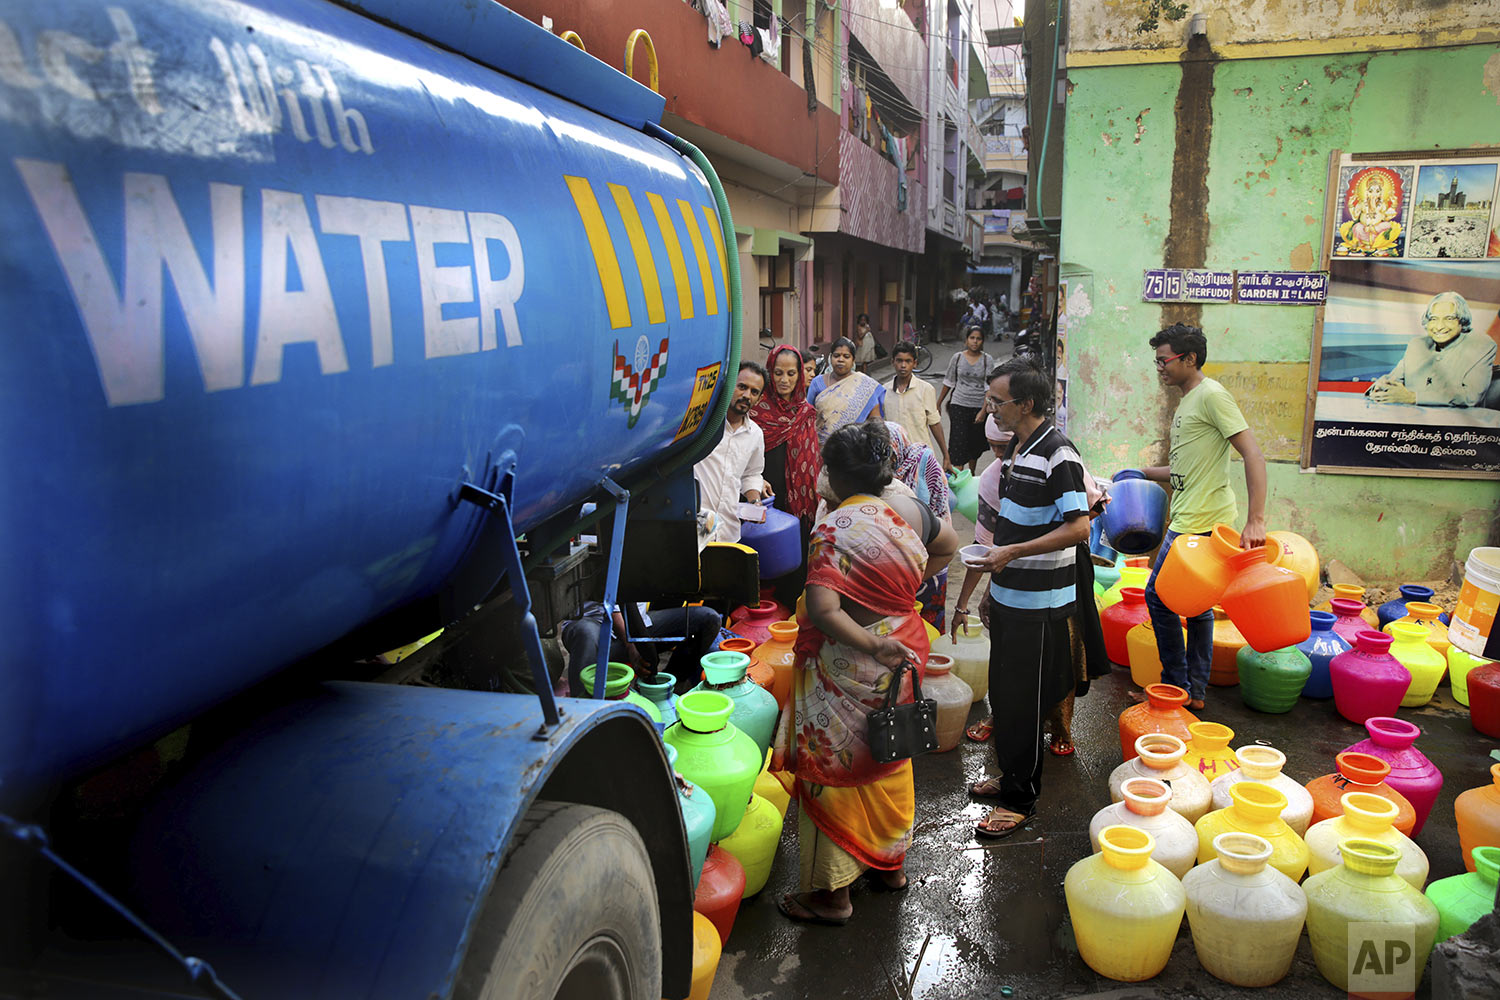 People fill drinking water from a water tanker truck in Chennai in Southern Indian state of Tamil Nadu, Monday, July 15, 2019. (AP Photo/Manish Swarup)